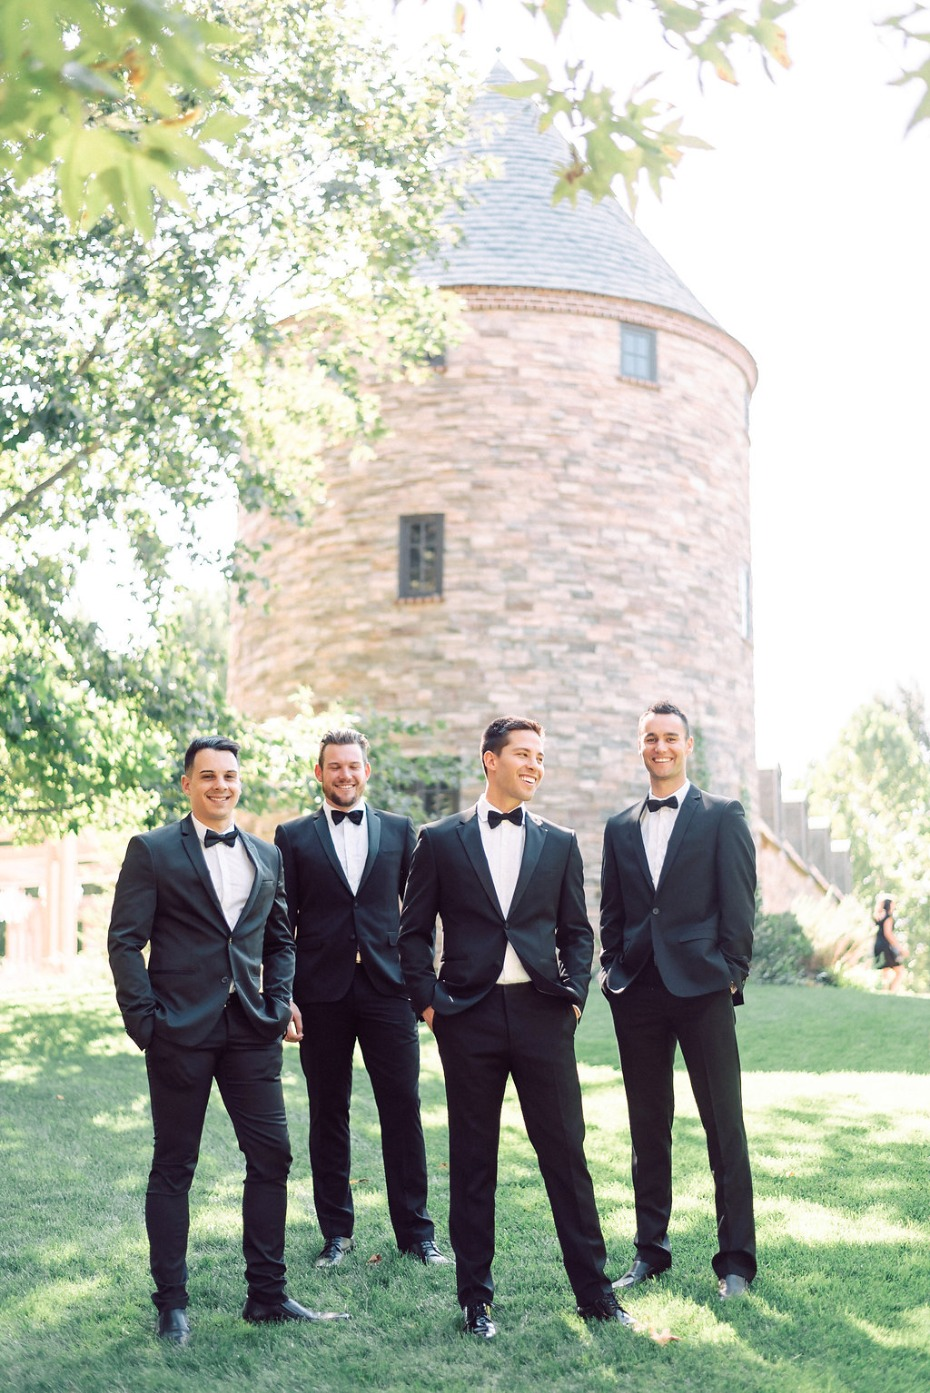 Dean Geyer from Glee gets married